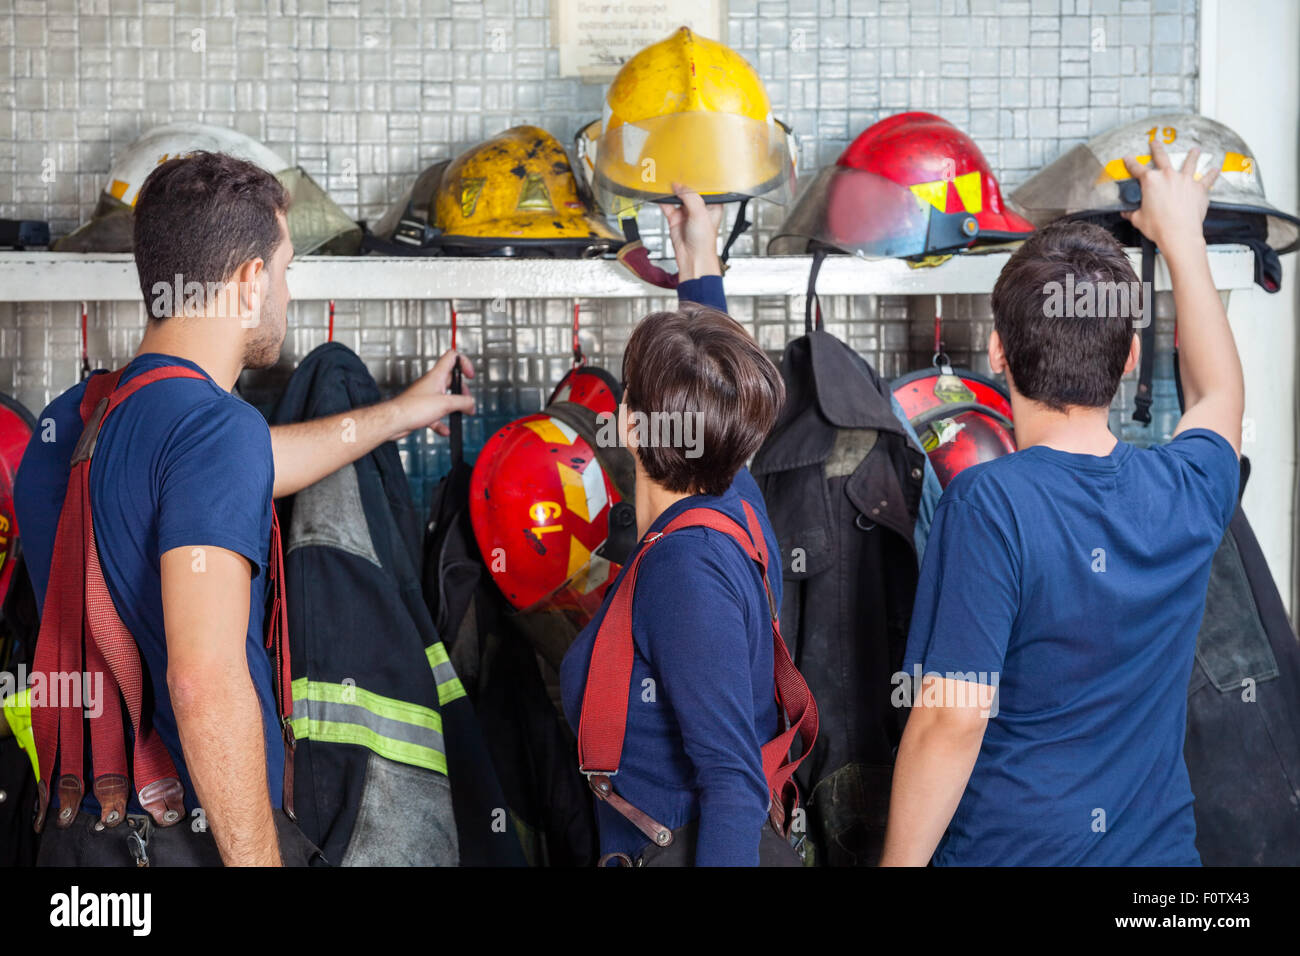 Firefighters Removing Helmets From Shelf - Stock Image